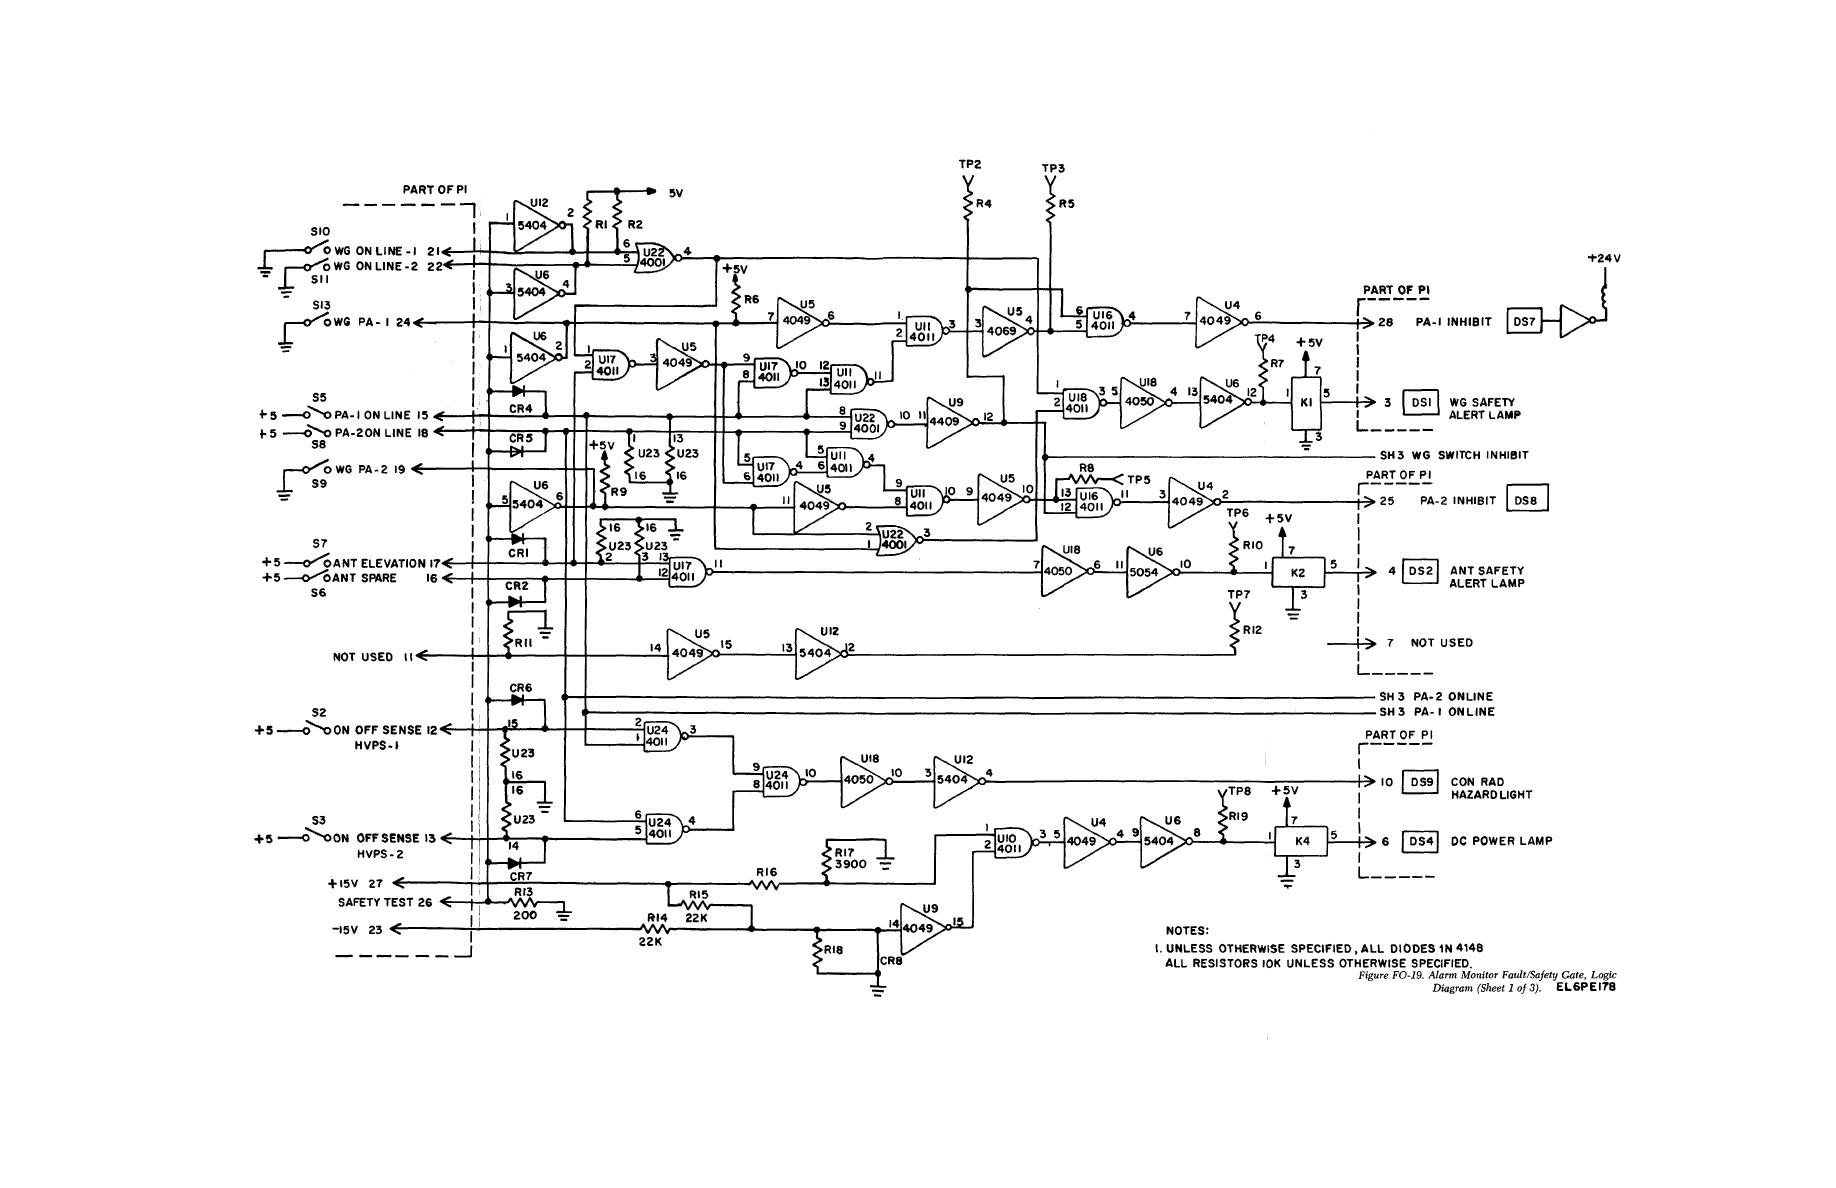 hight resolution of alarm monitor fault safety gate logic diagram sheet 1of 3